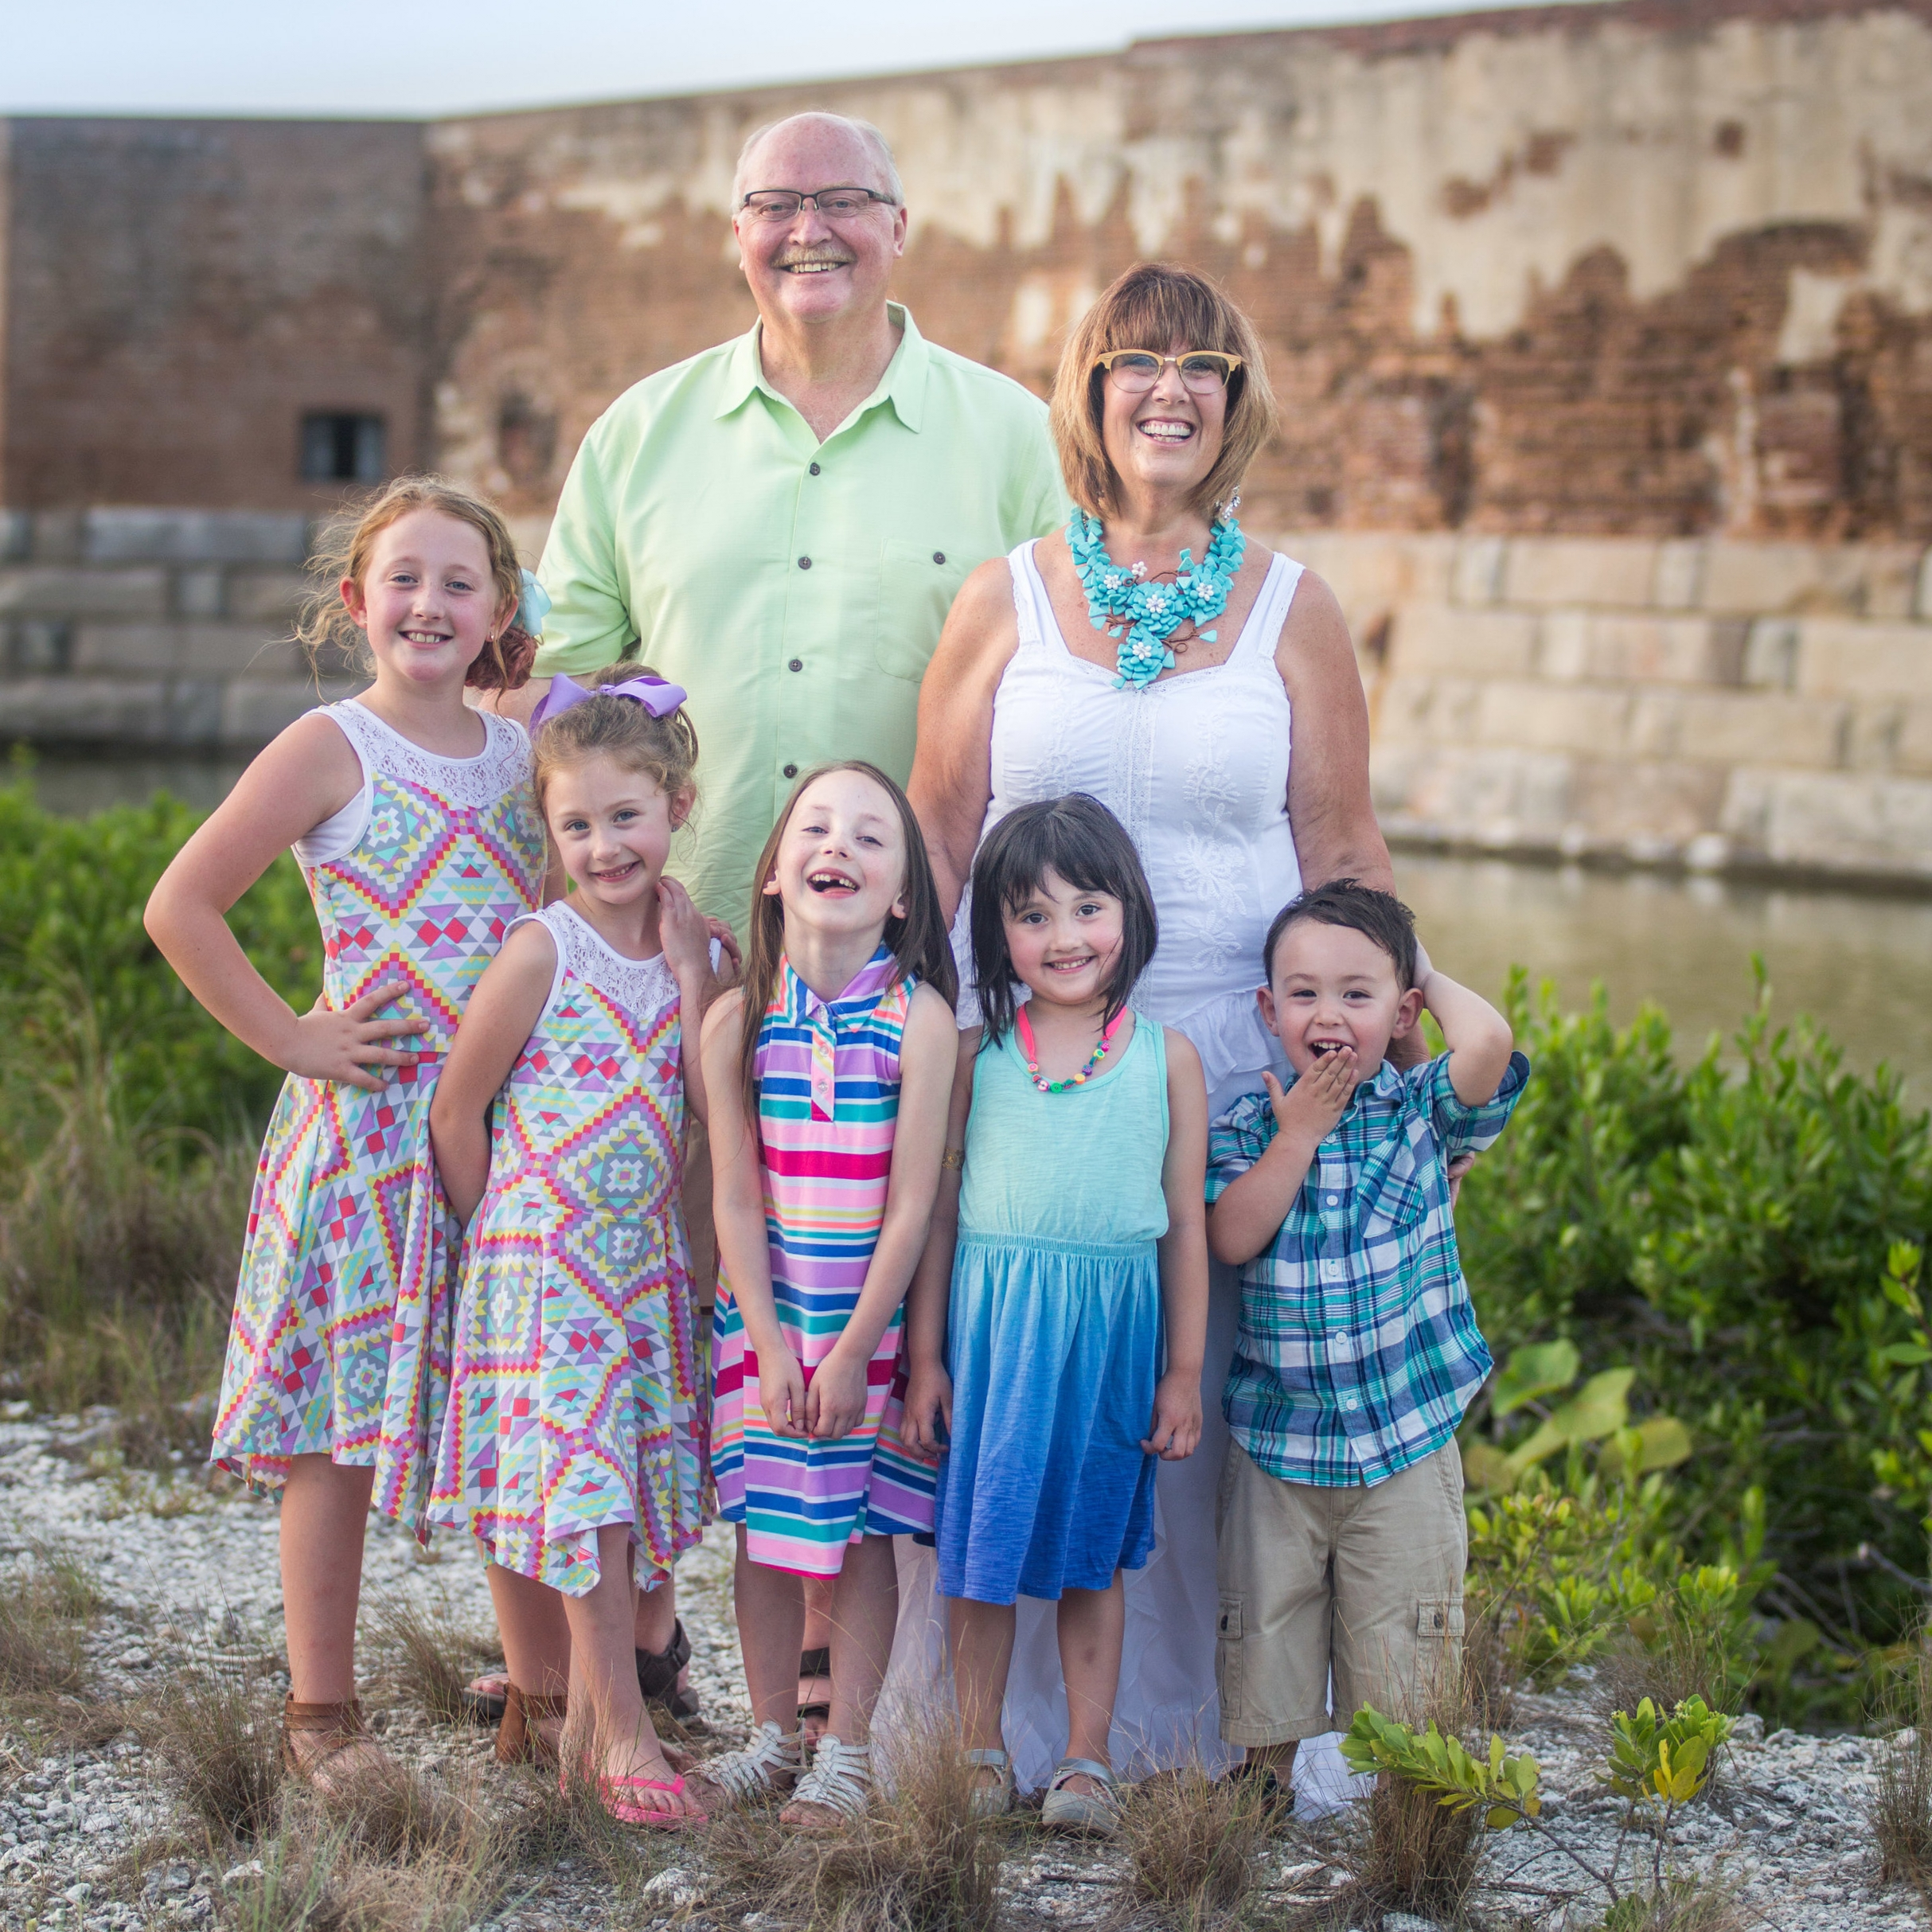 Family-Portrait-Near-Fort-Zachary-with-young-kids.jpg